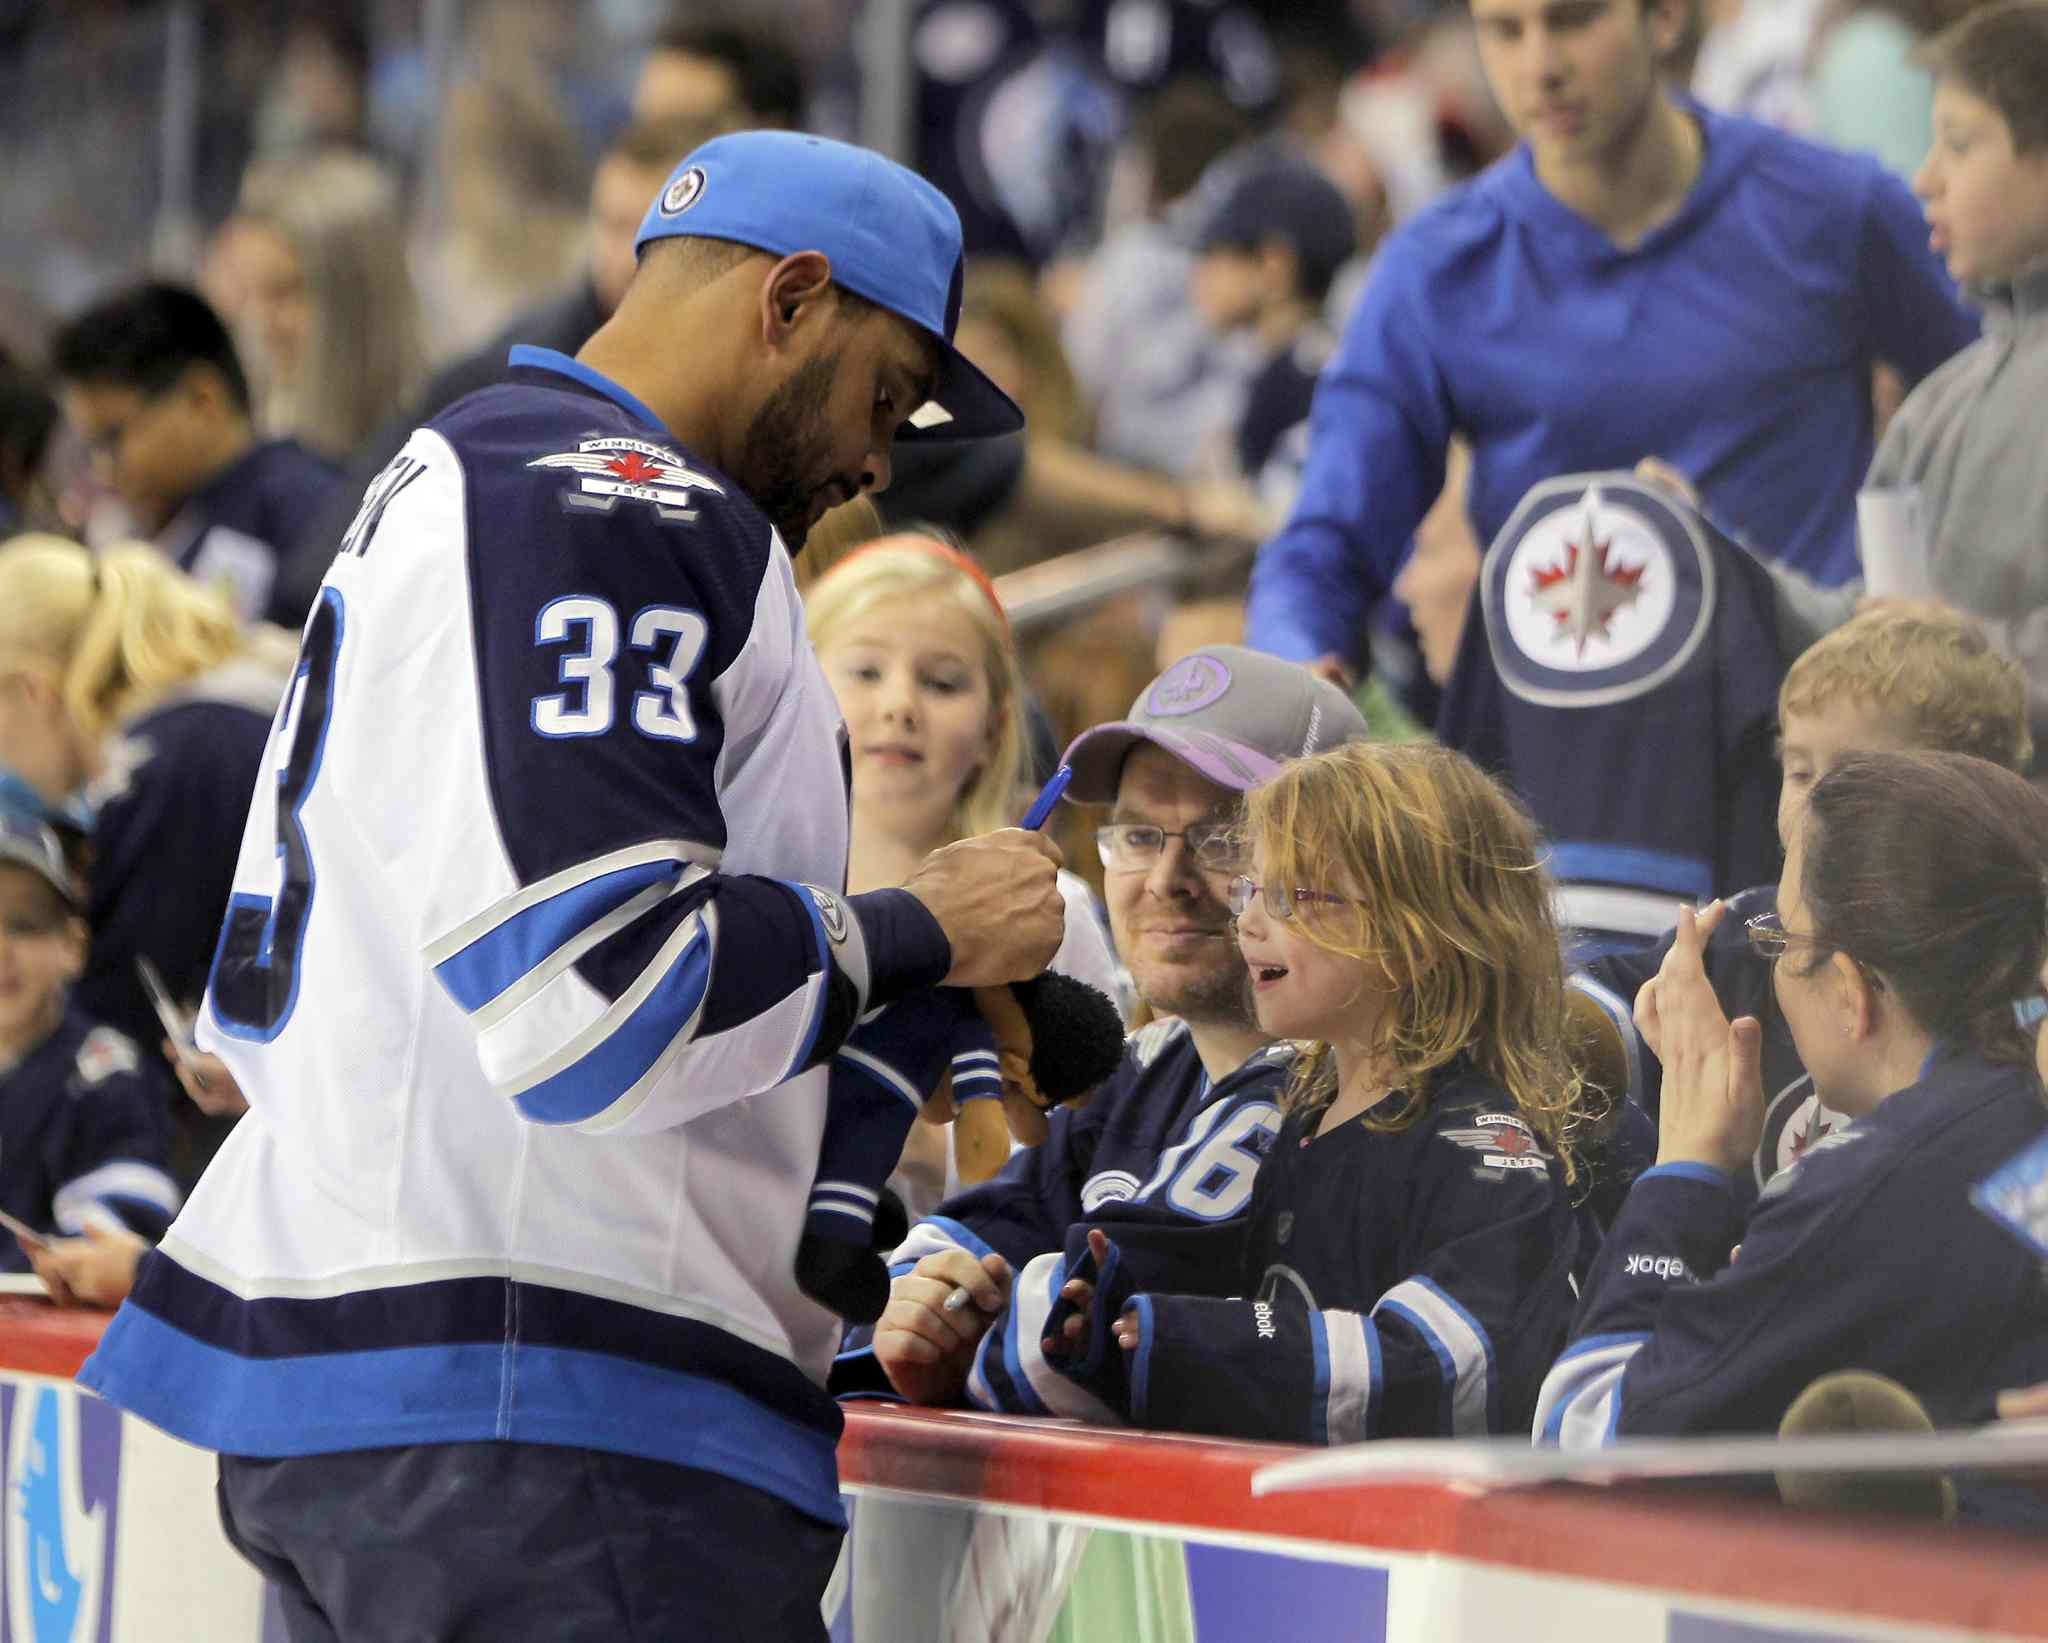 Dustin Byfuglien sign autographs during the Winnipeg Jets Skills competition last week.